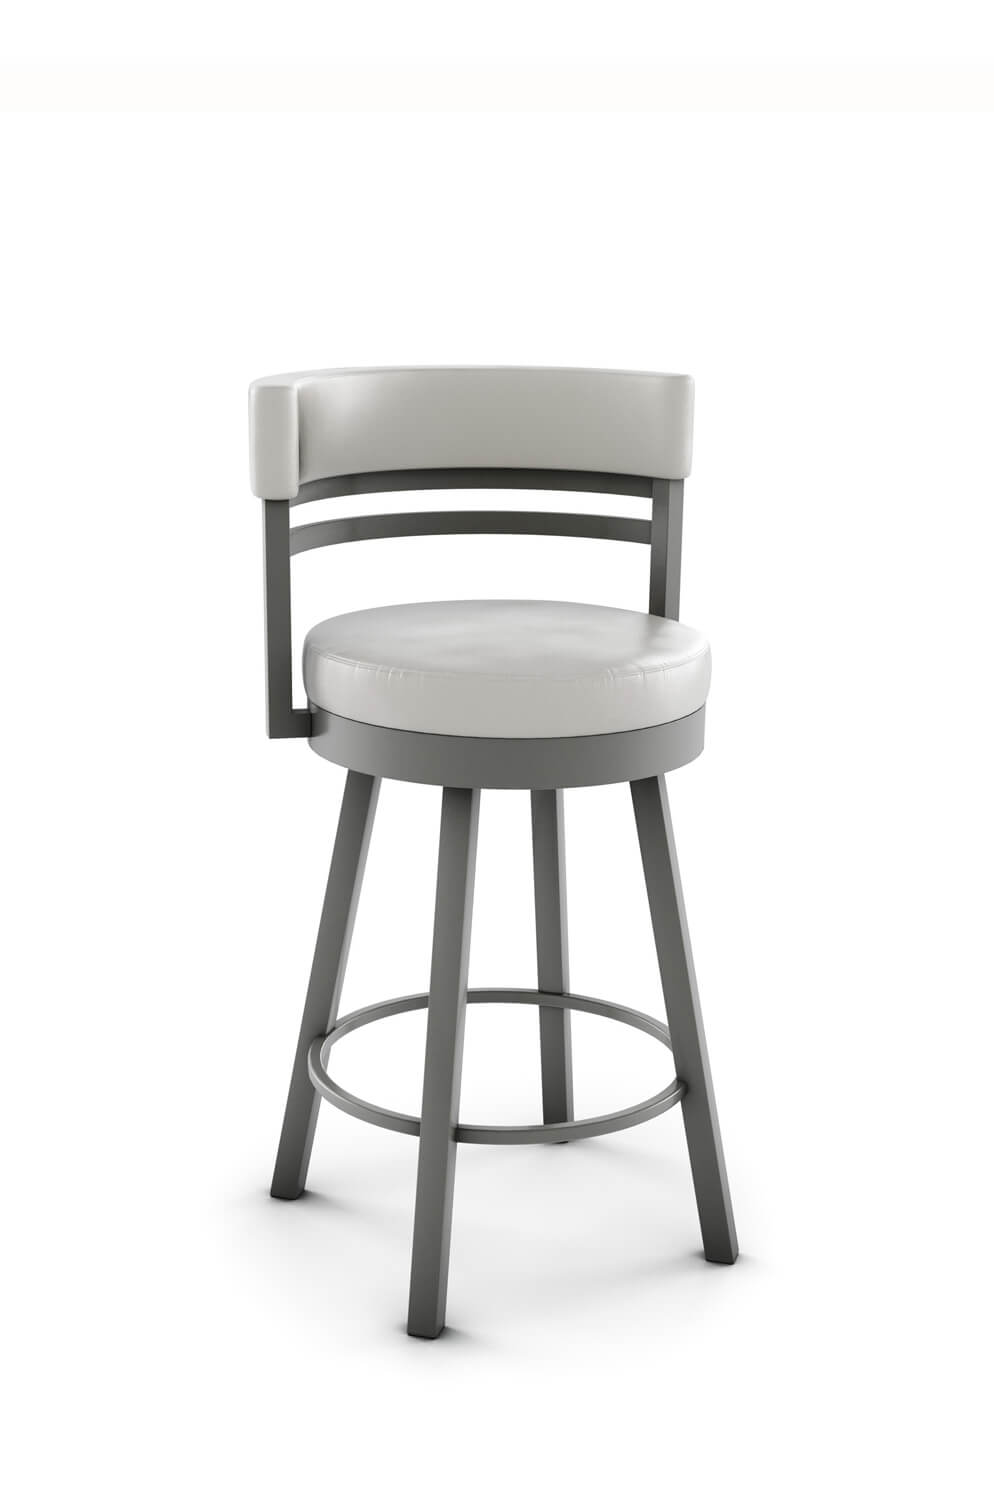 Astounding Ronny Swivel Stool Caraccident5 Cool Chair Designs And Ideas Caraccident5Info